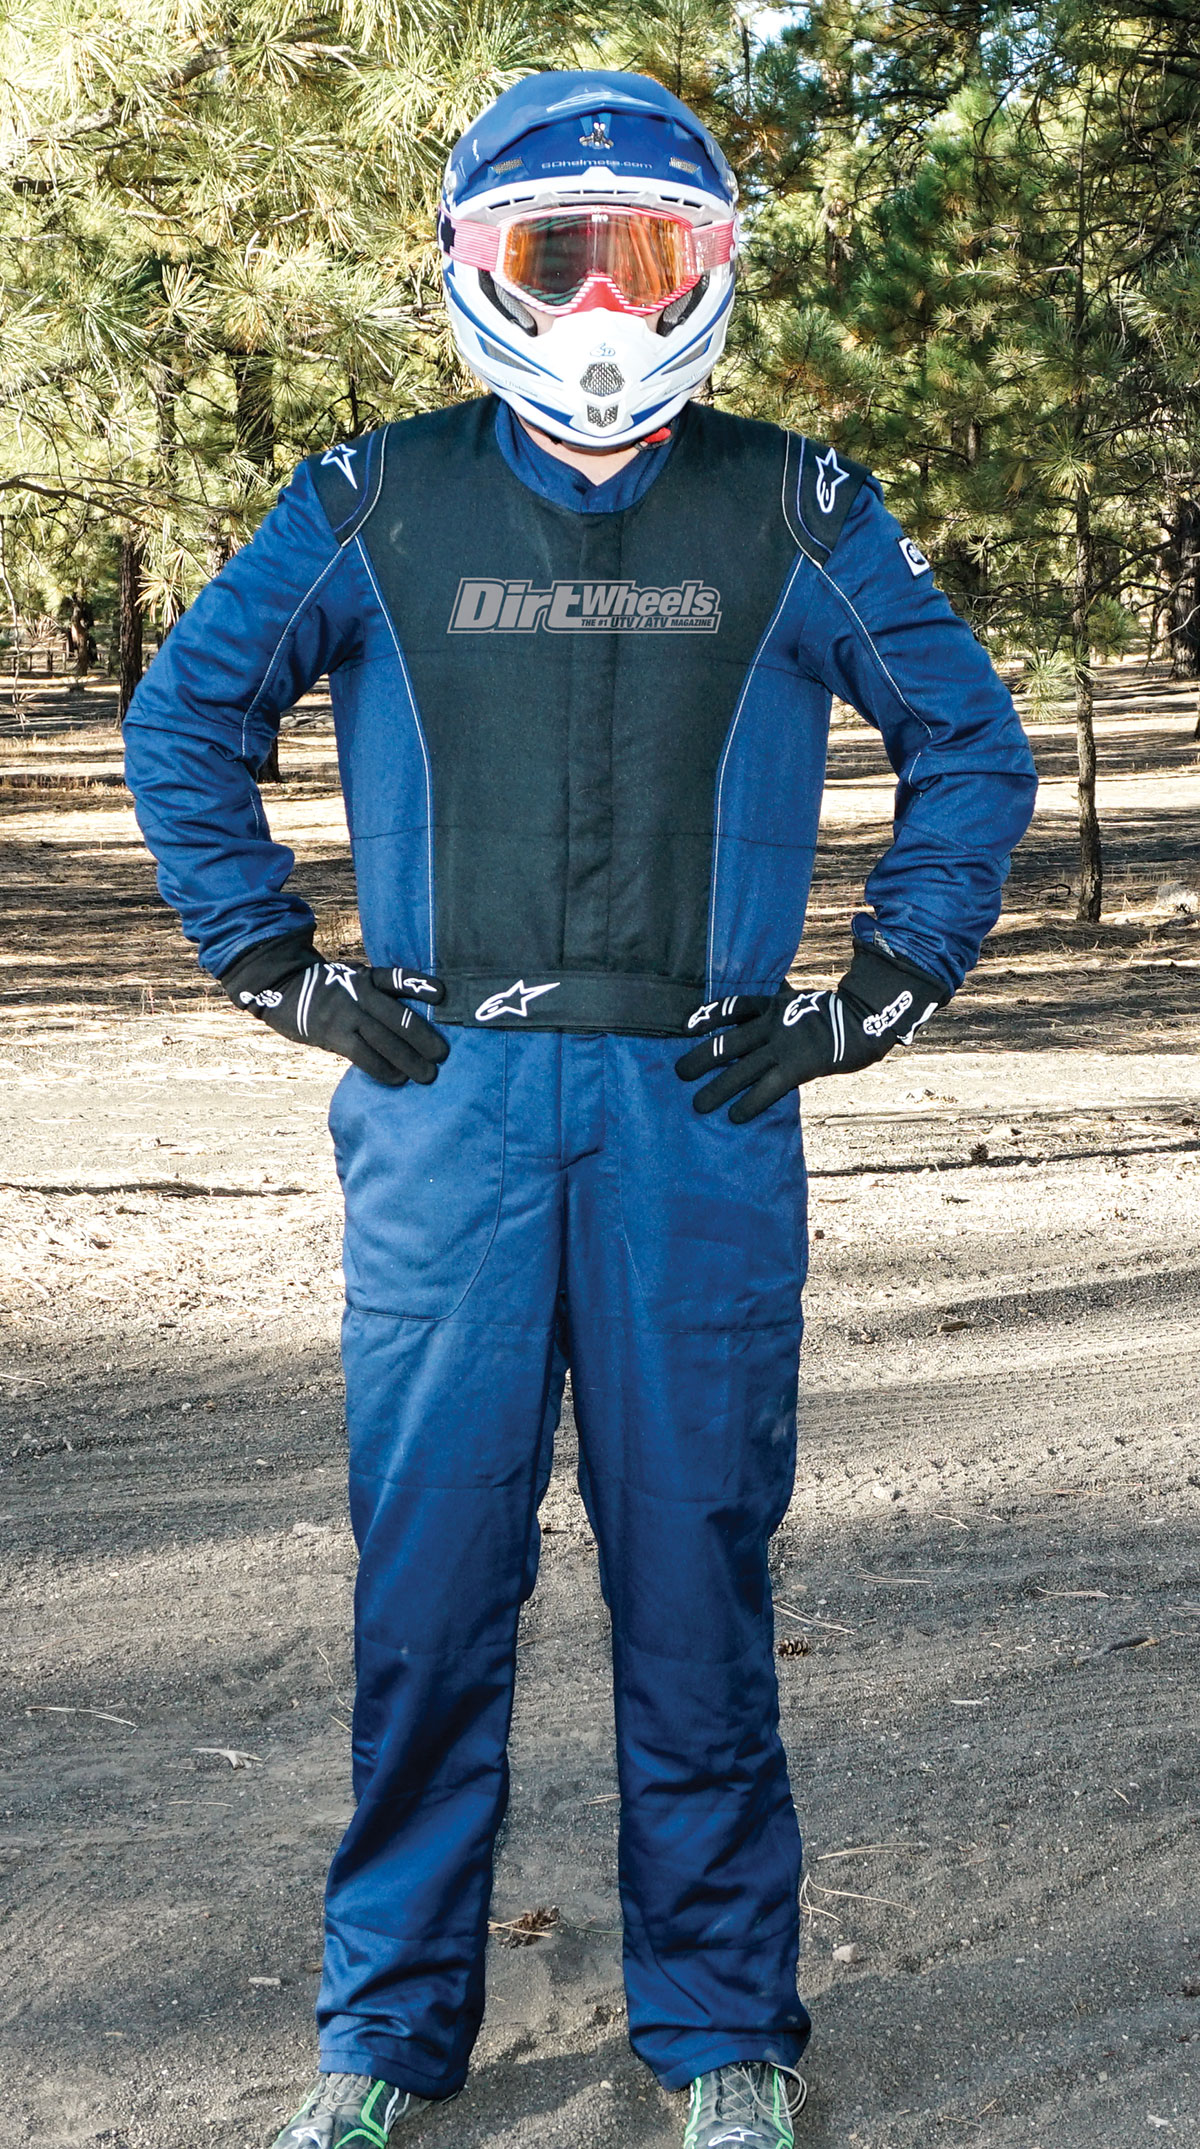 Racing Fire Suits >> ALPINESTARS KNOXVILLE & GP DRIVING SUITS | Dirt Wheels ...